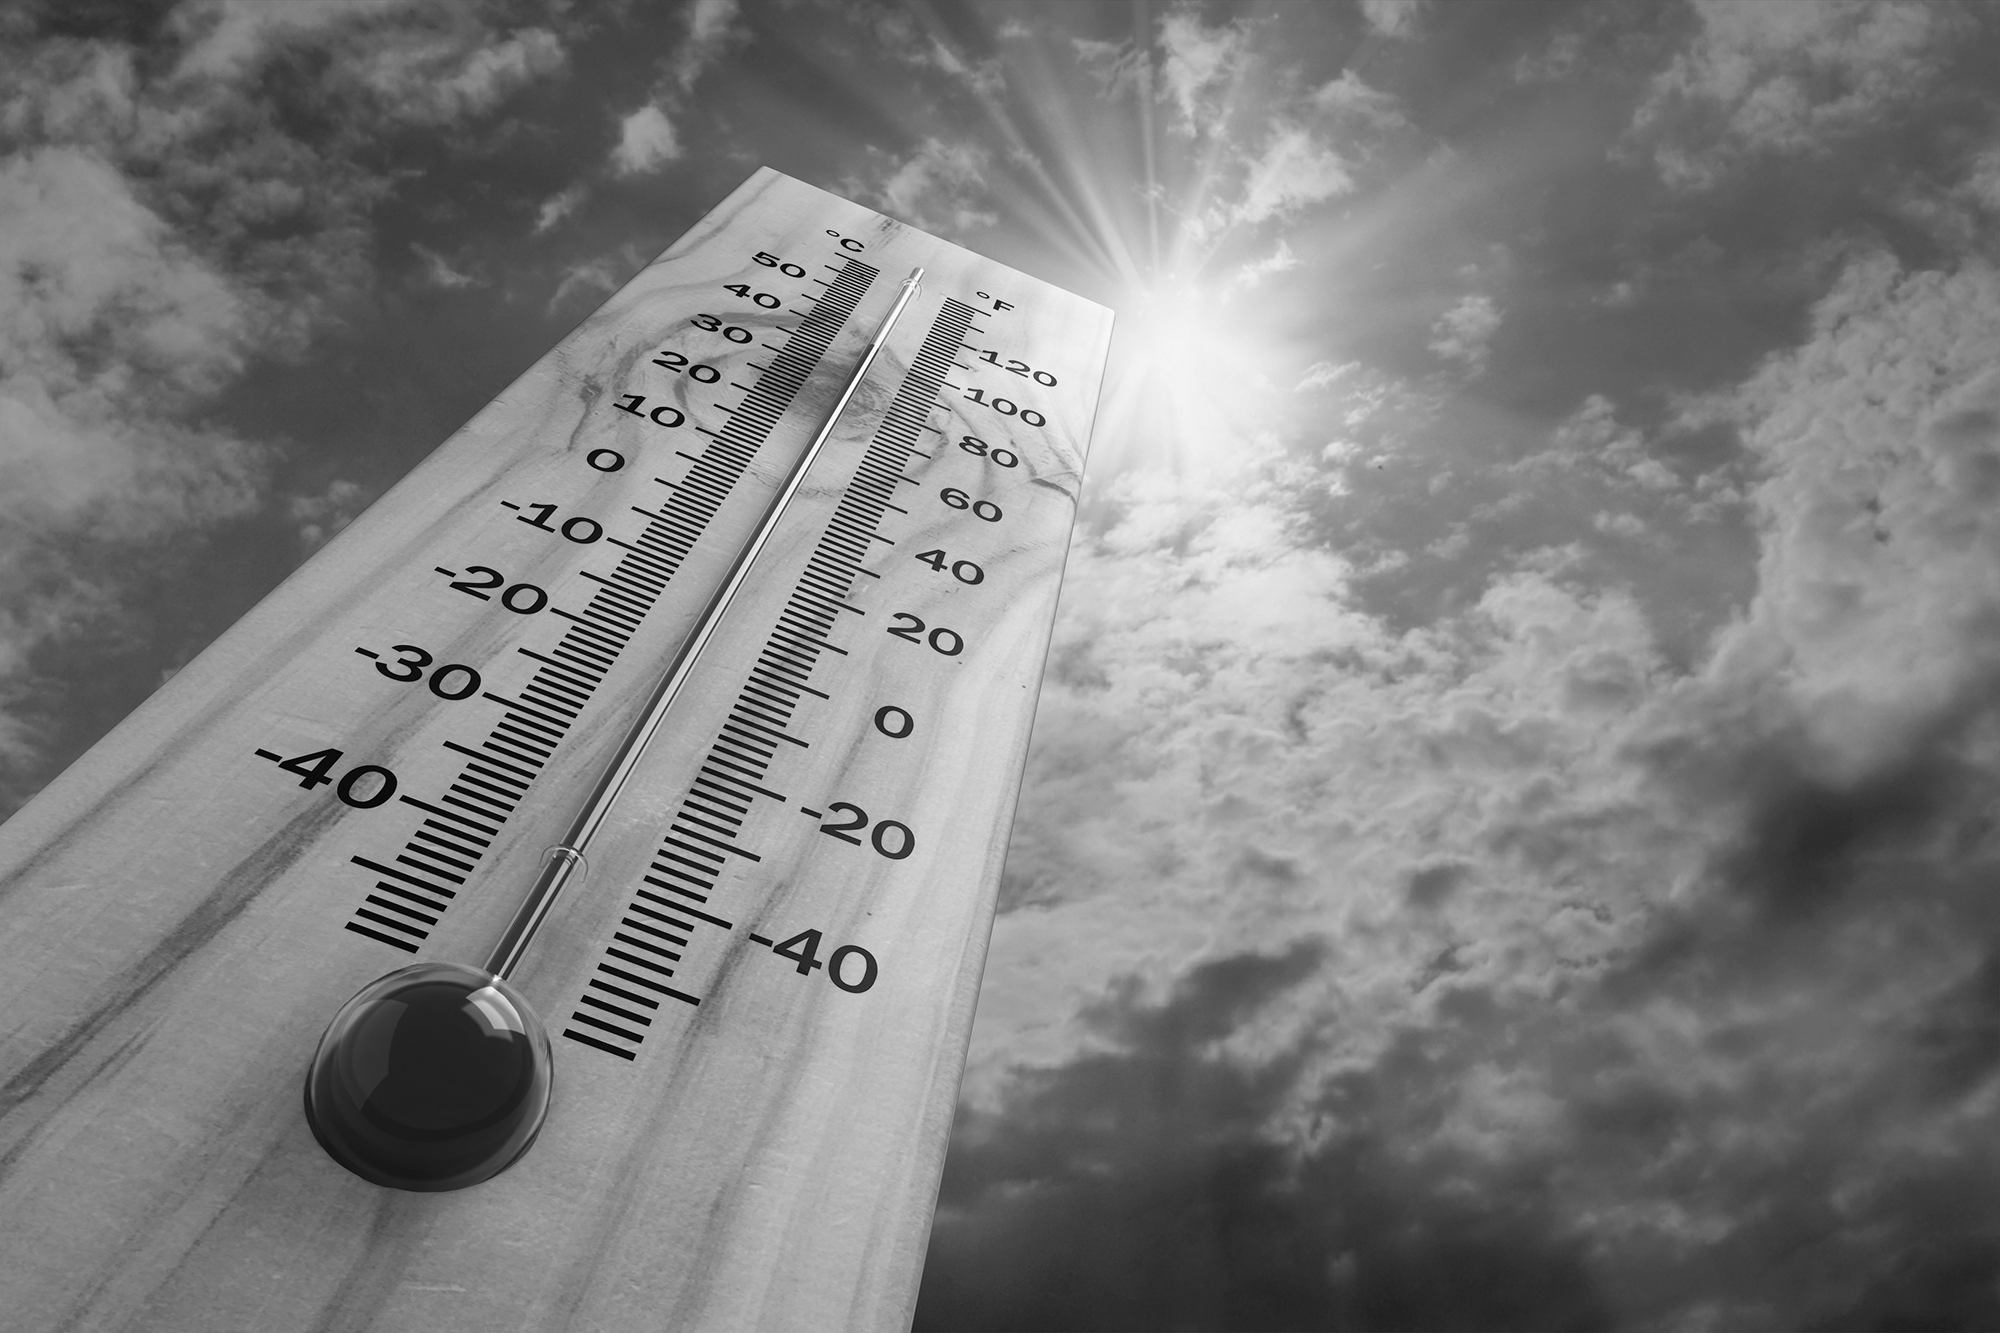 thermometer-sun-heat-hero-stock-image-2000px.png